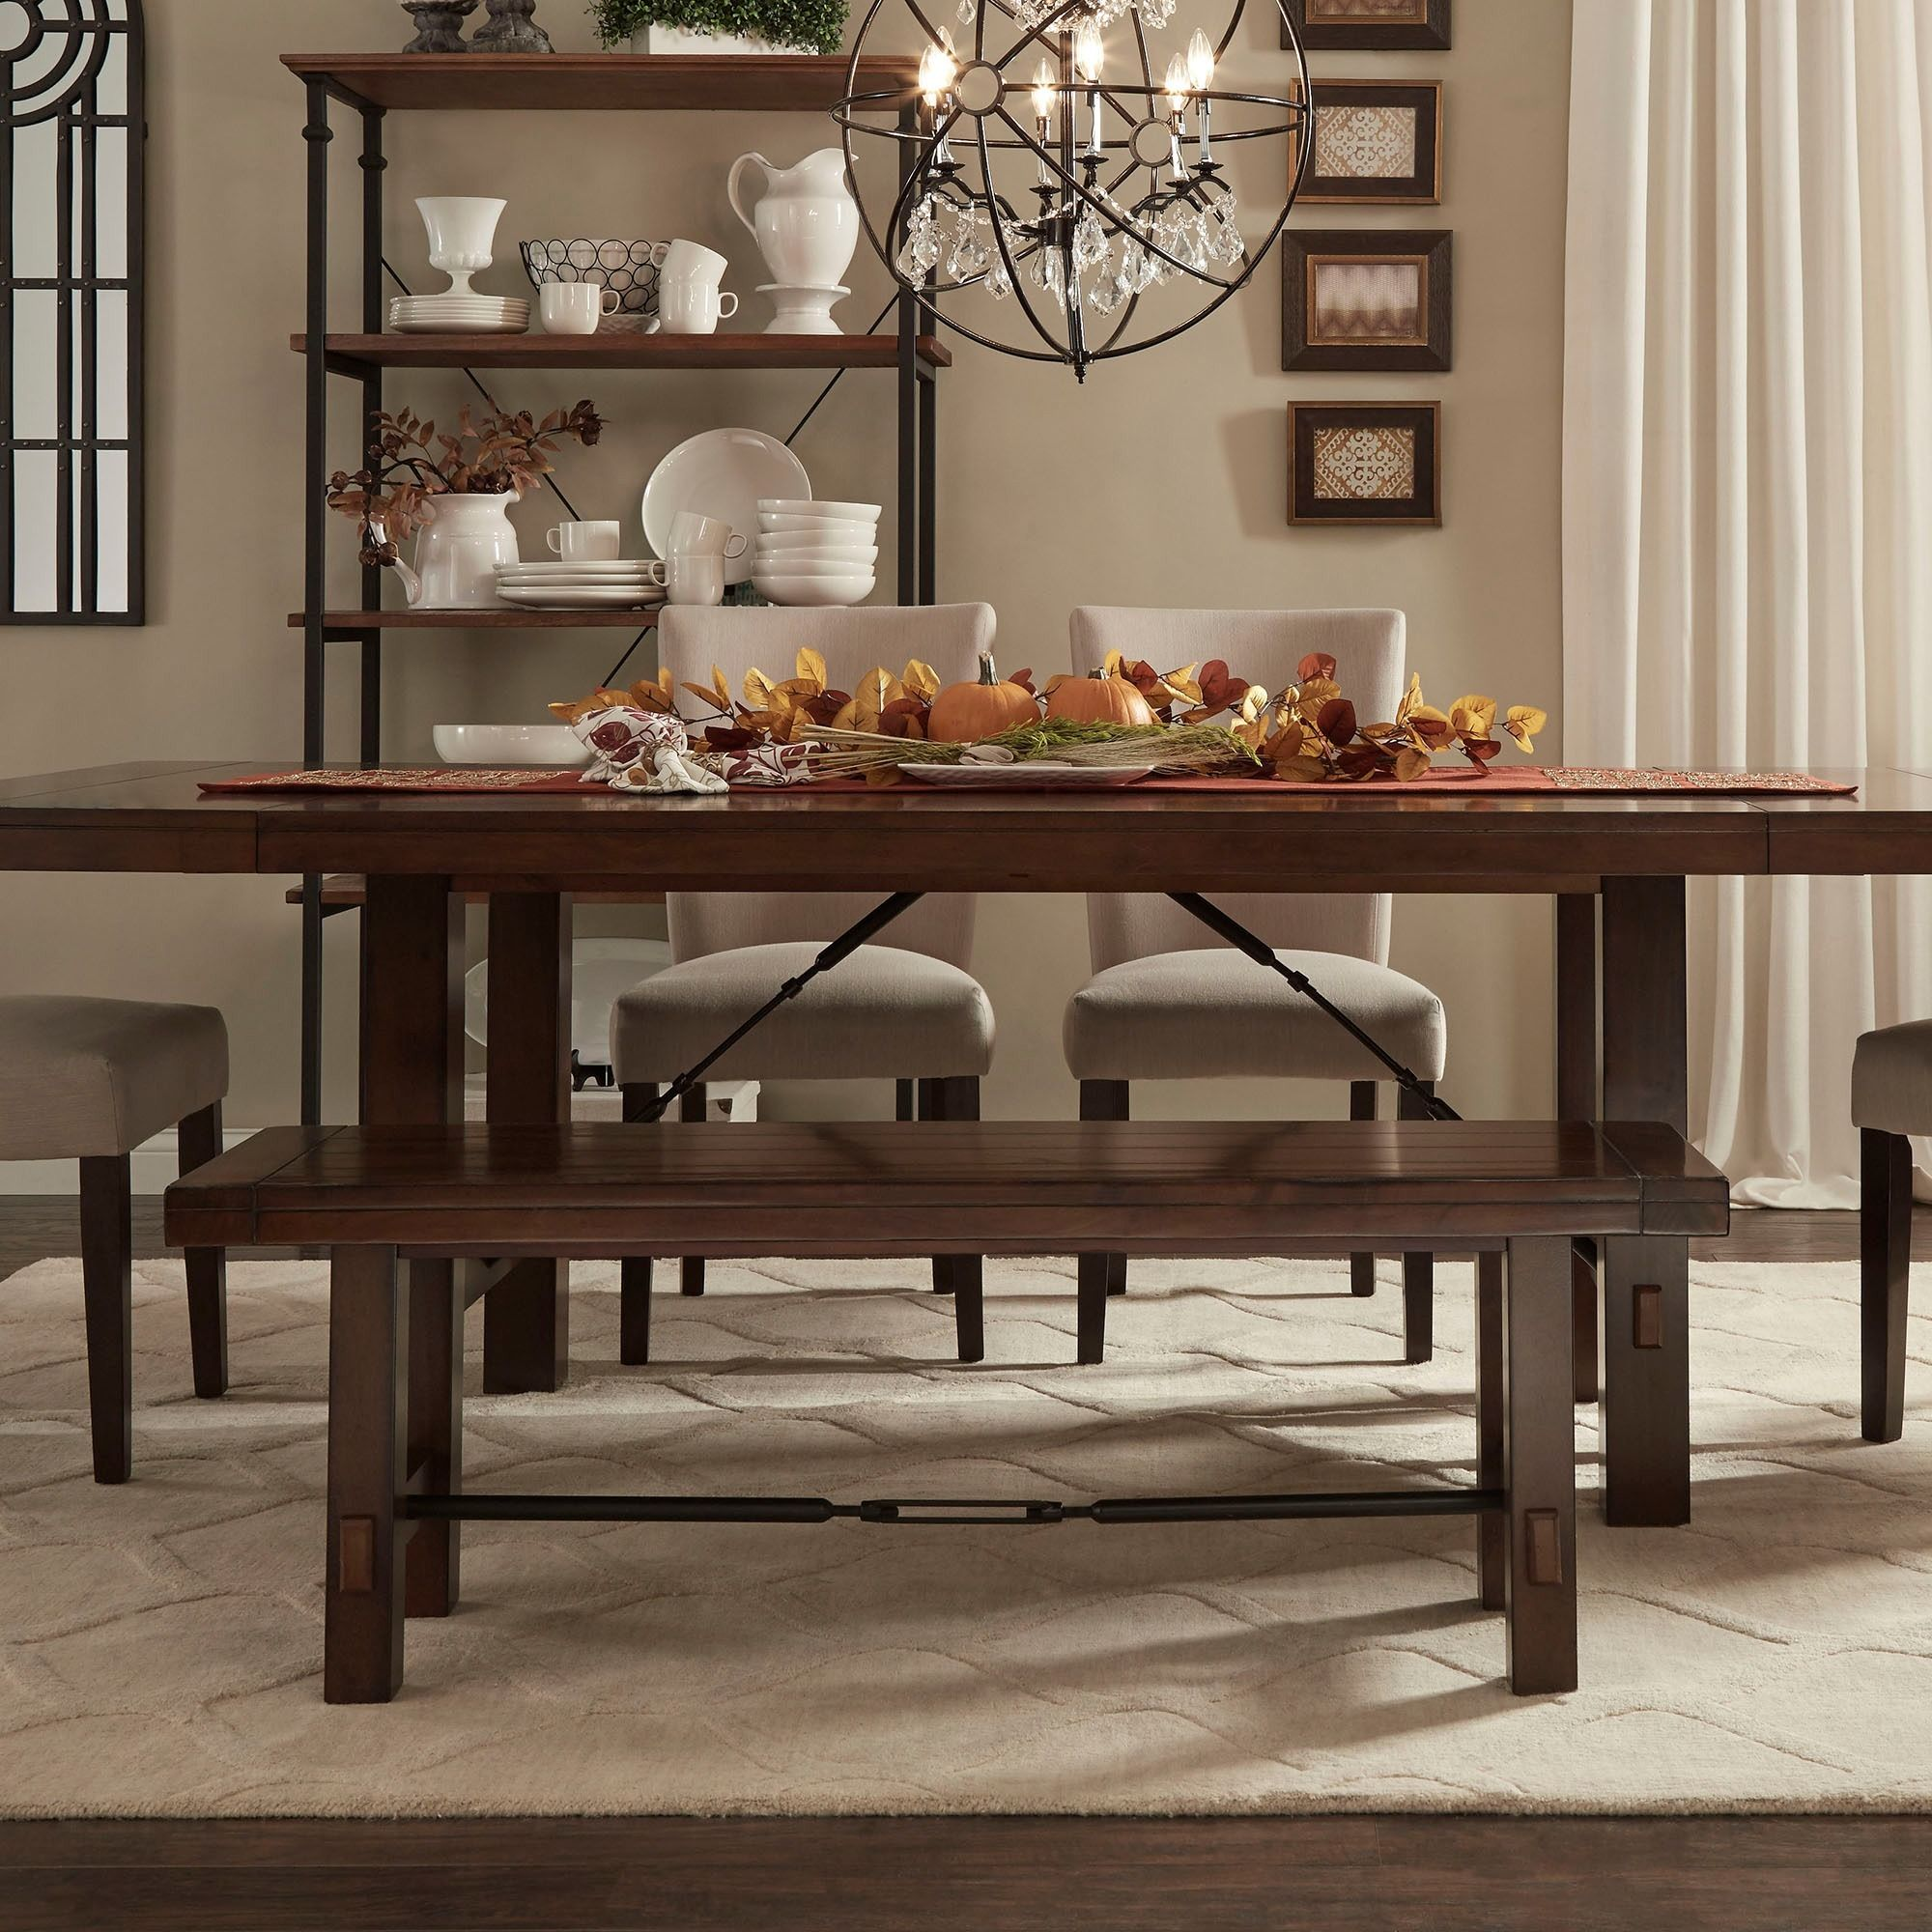 Add a new seating option to your table with this dining table bench. It  enables